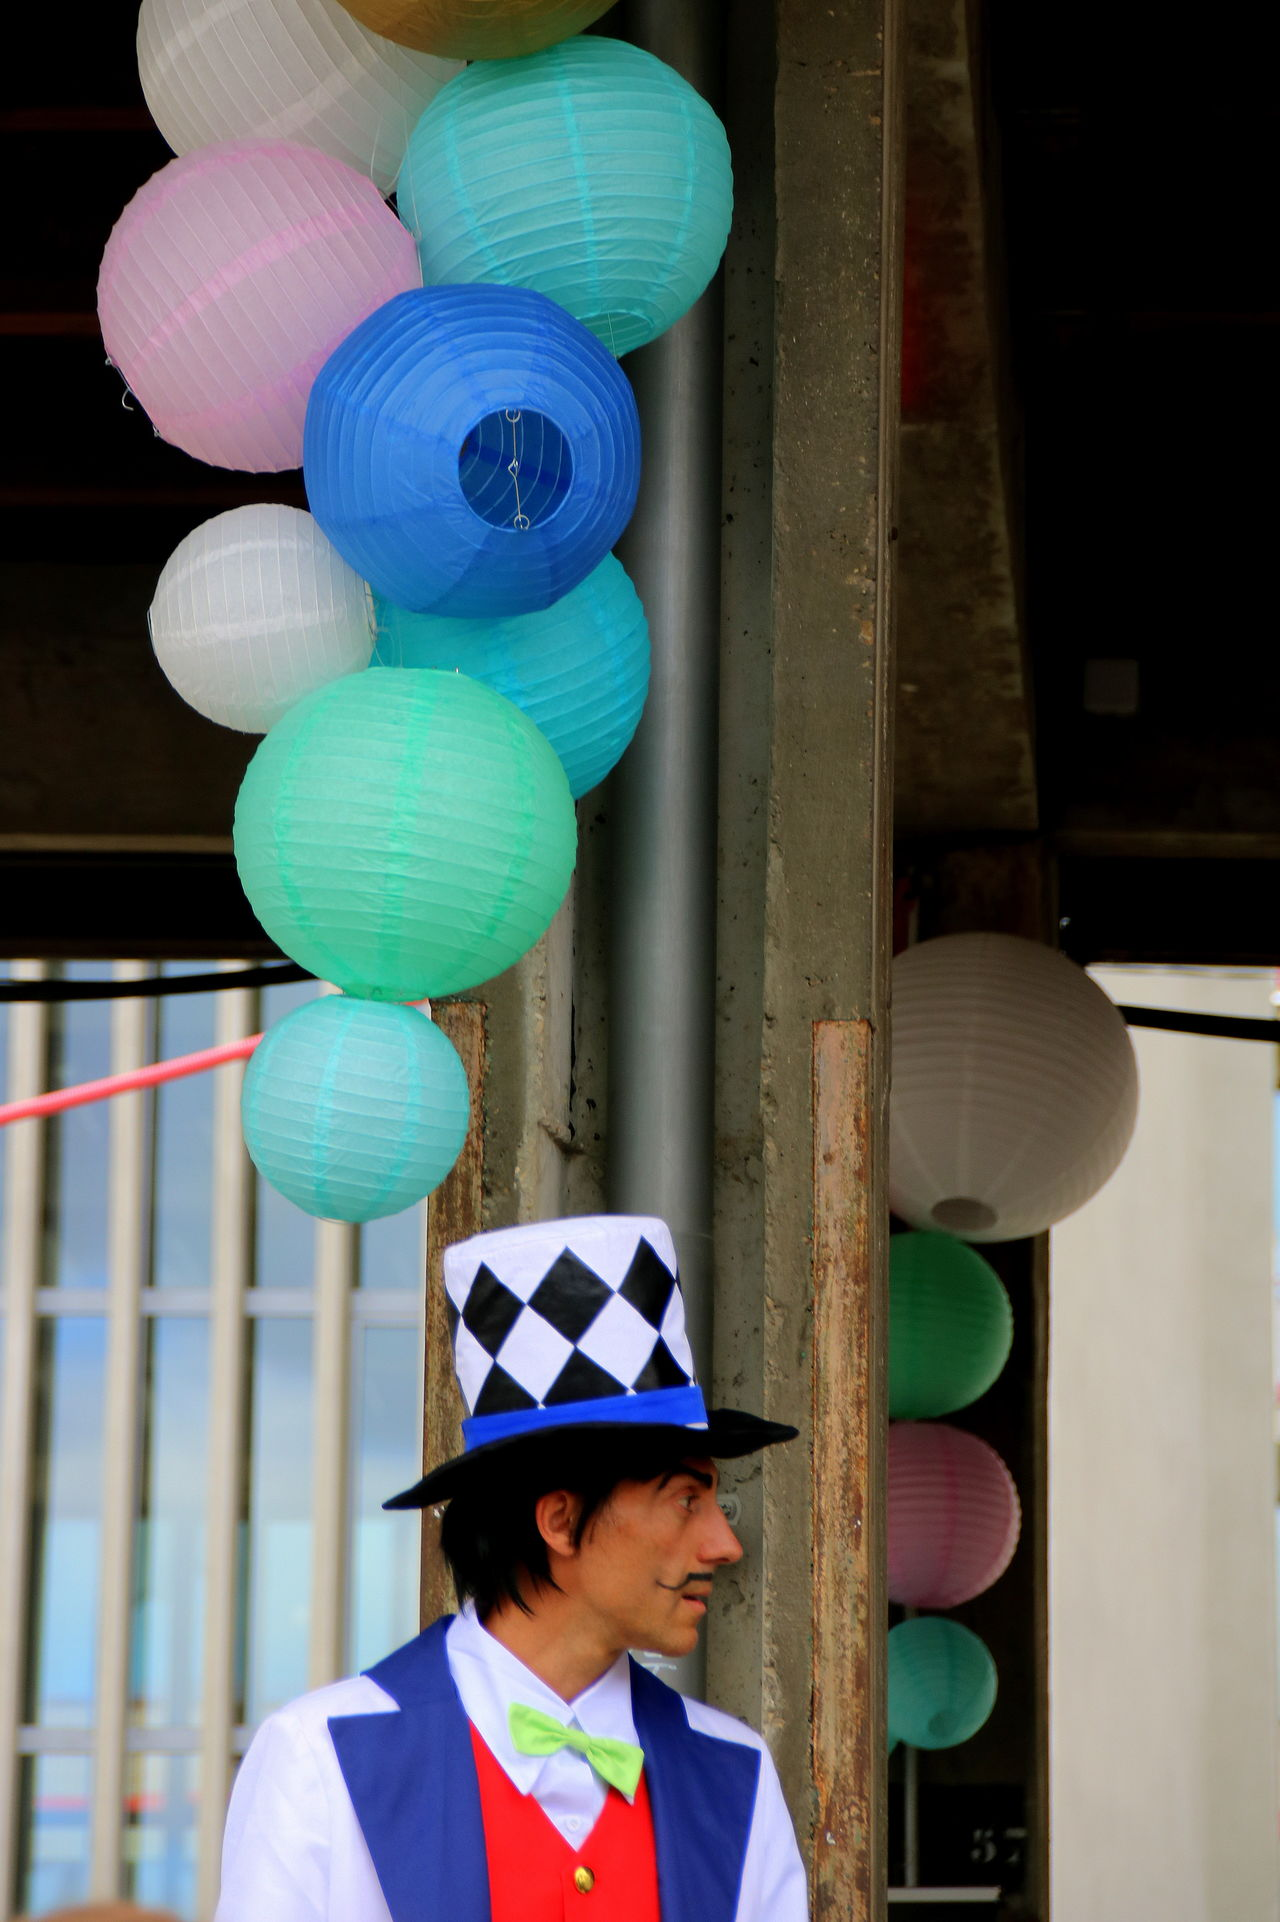 Balloon Boys Childhood Colors Cosplayer Day Disguise Dressing Up Hat Man Manga Multi Colored One Person Outdoors People Real People